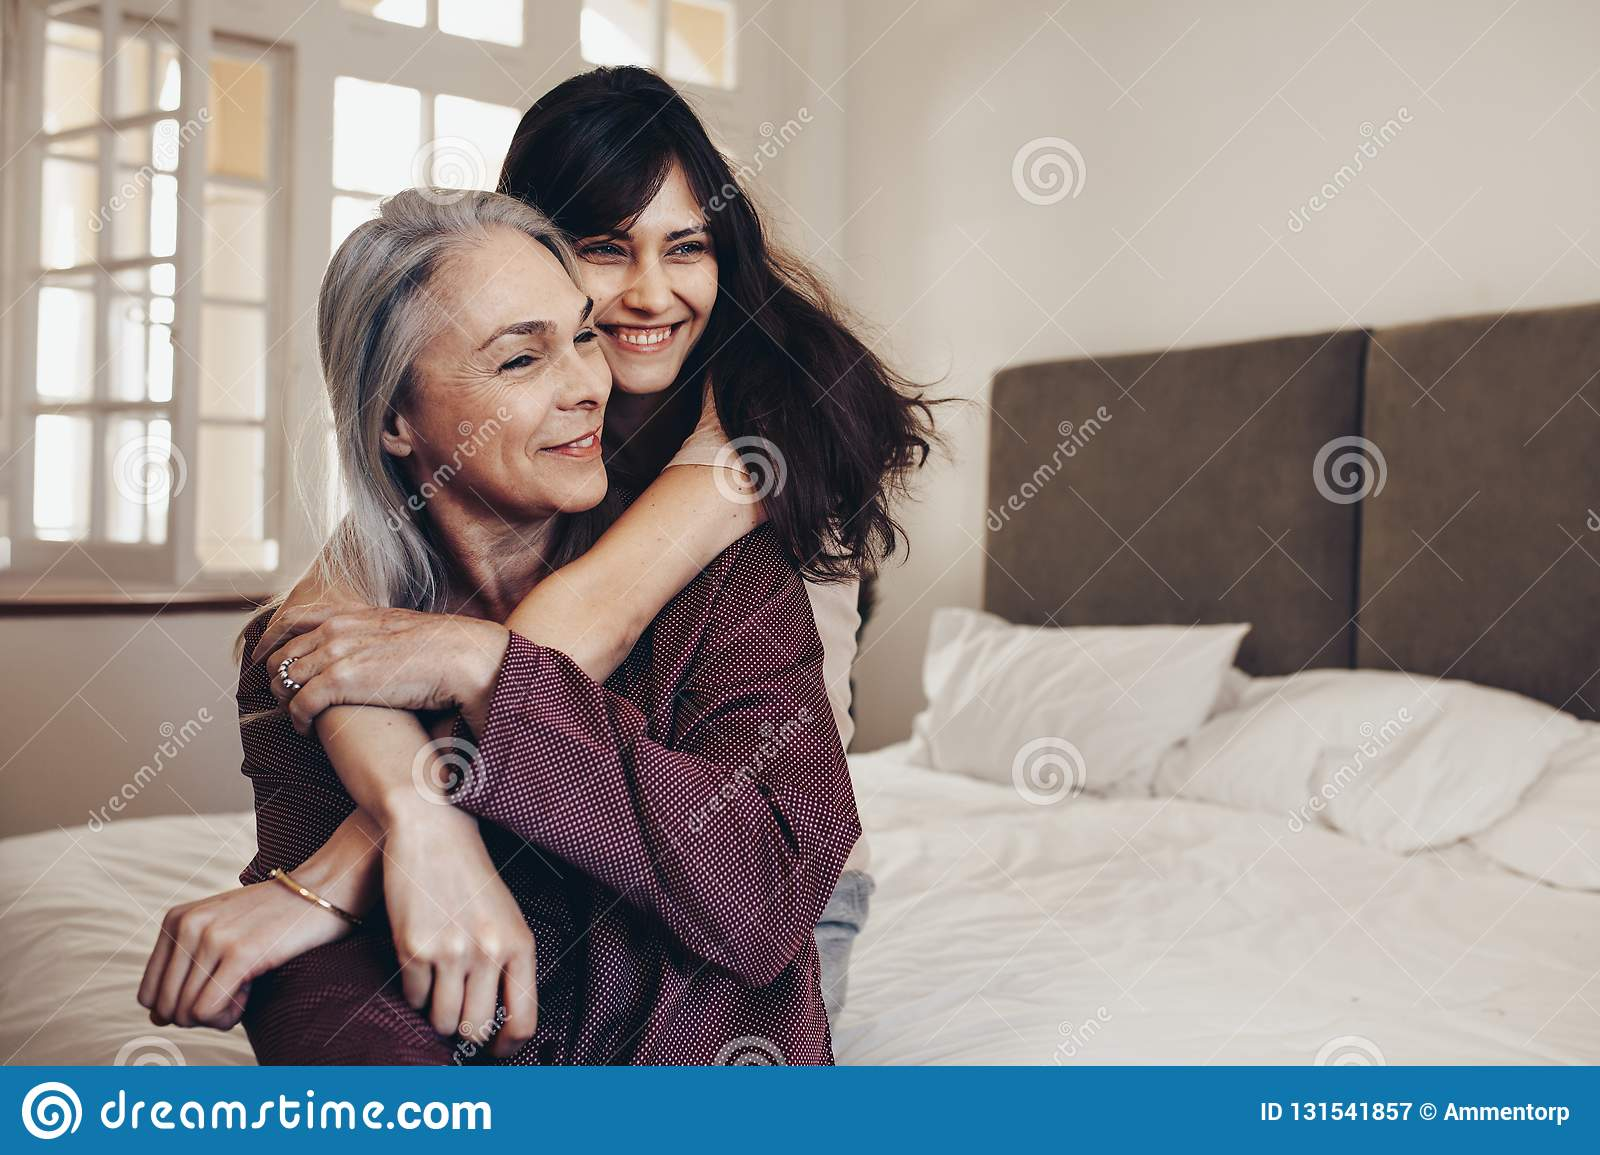 Elderly women sitting on bed with her daughter holding her hands. Smiling mother and daughter sitting at home spending time